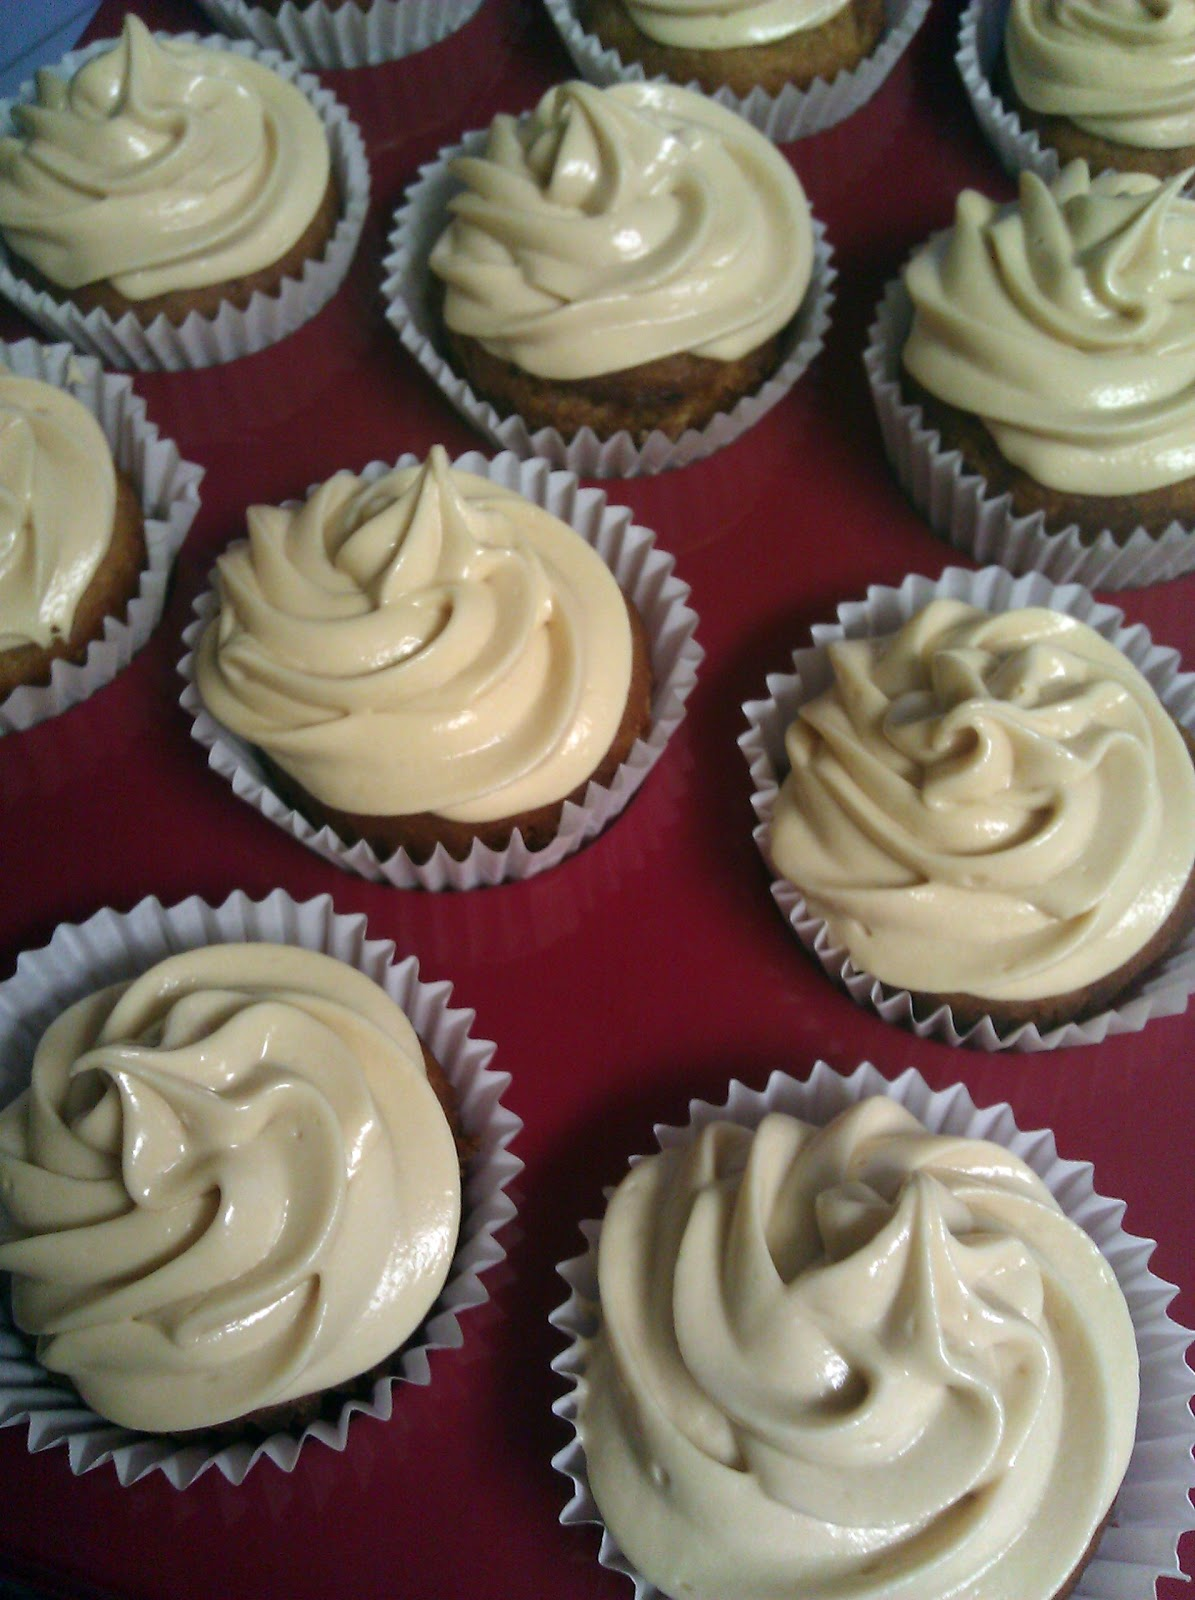 ... Girl's Guide To Cupcakes and More: Deep Fried Apple Cider Cupcakes